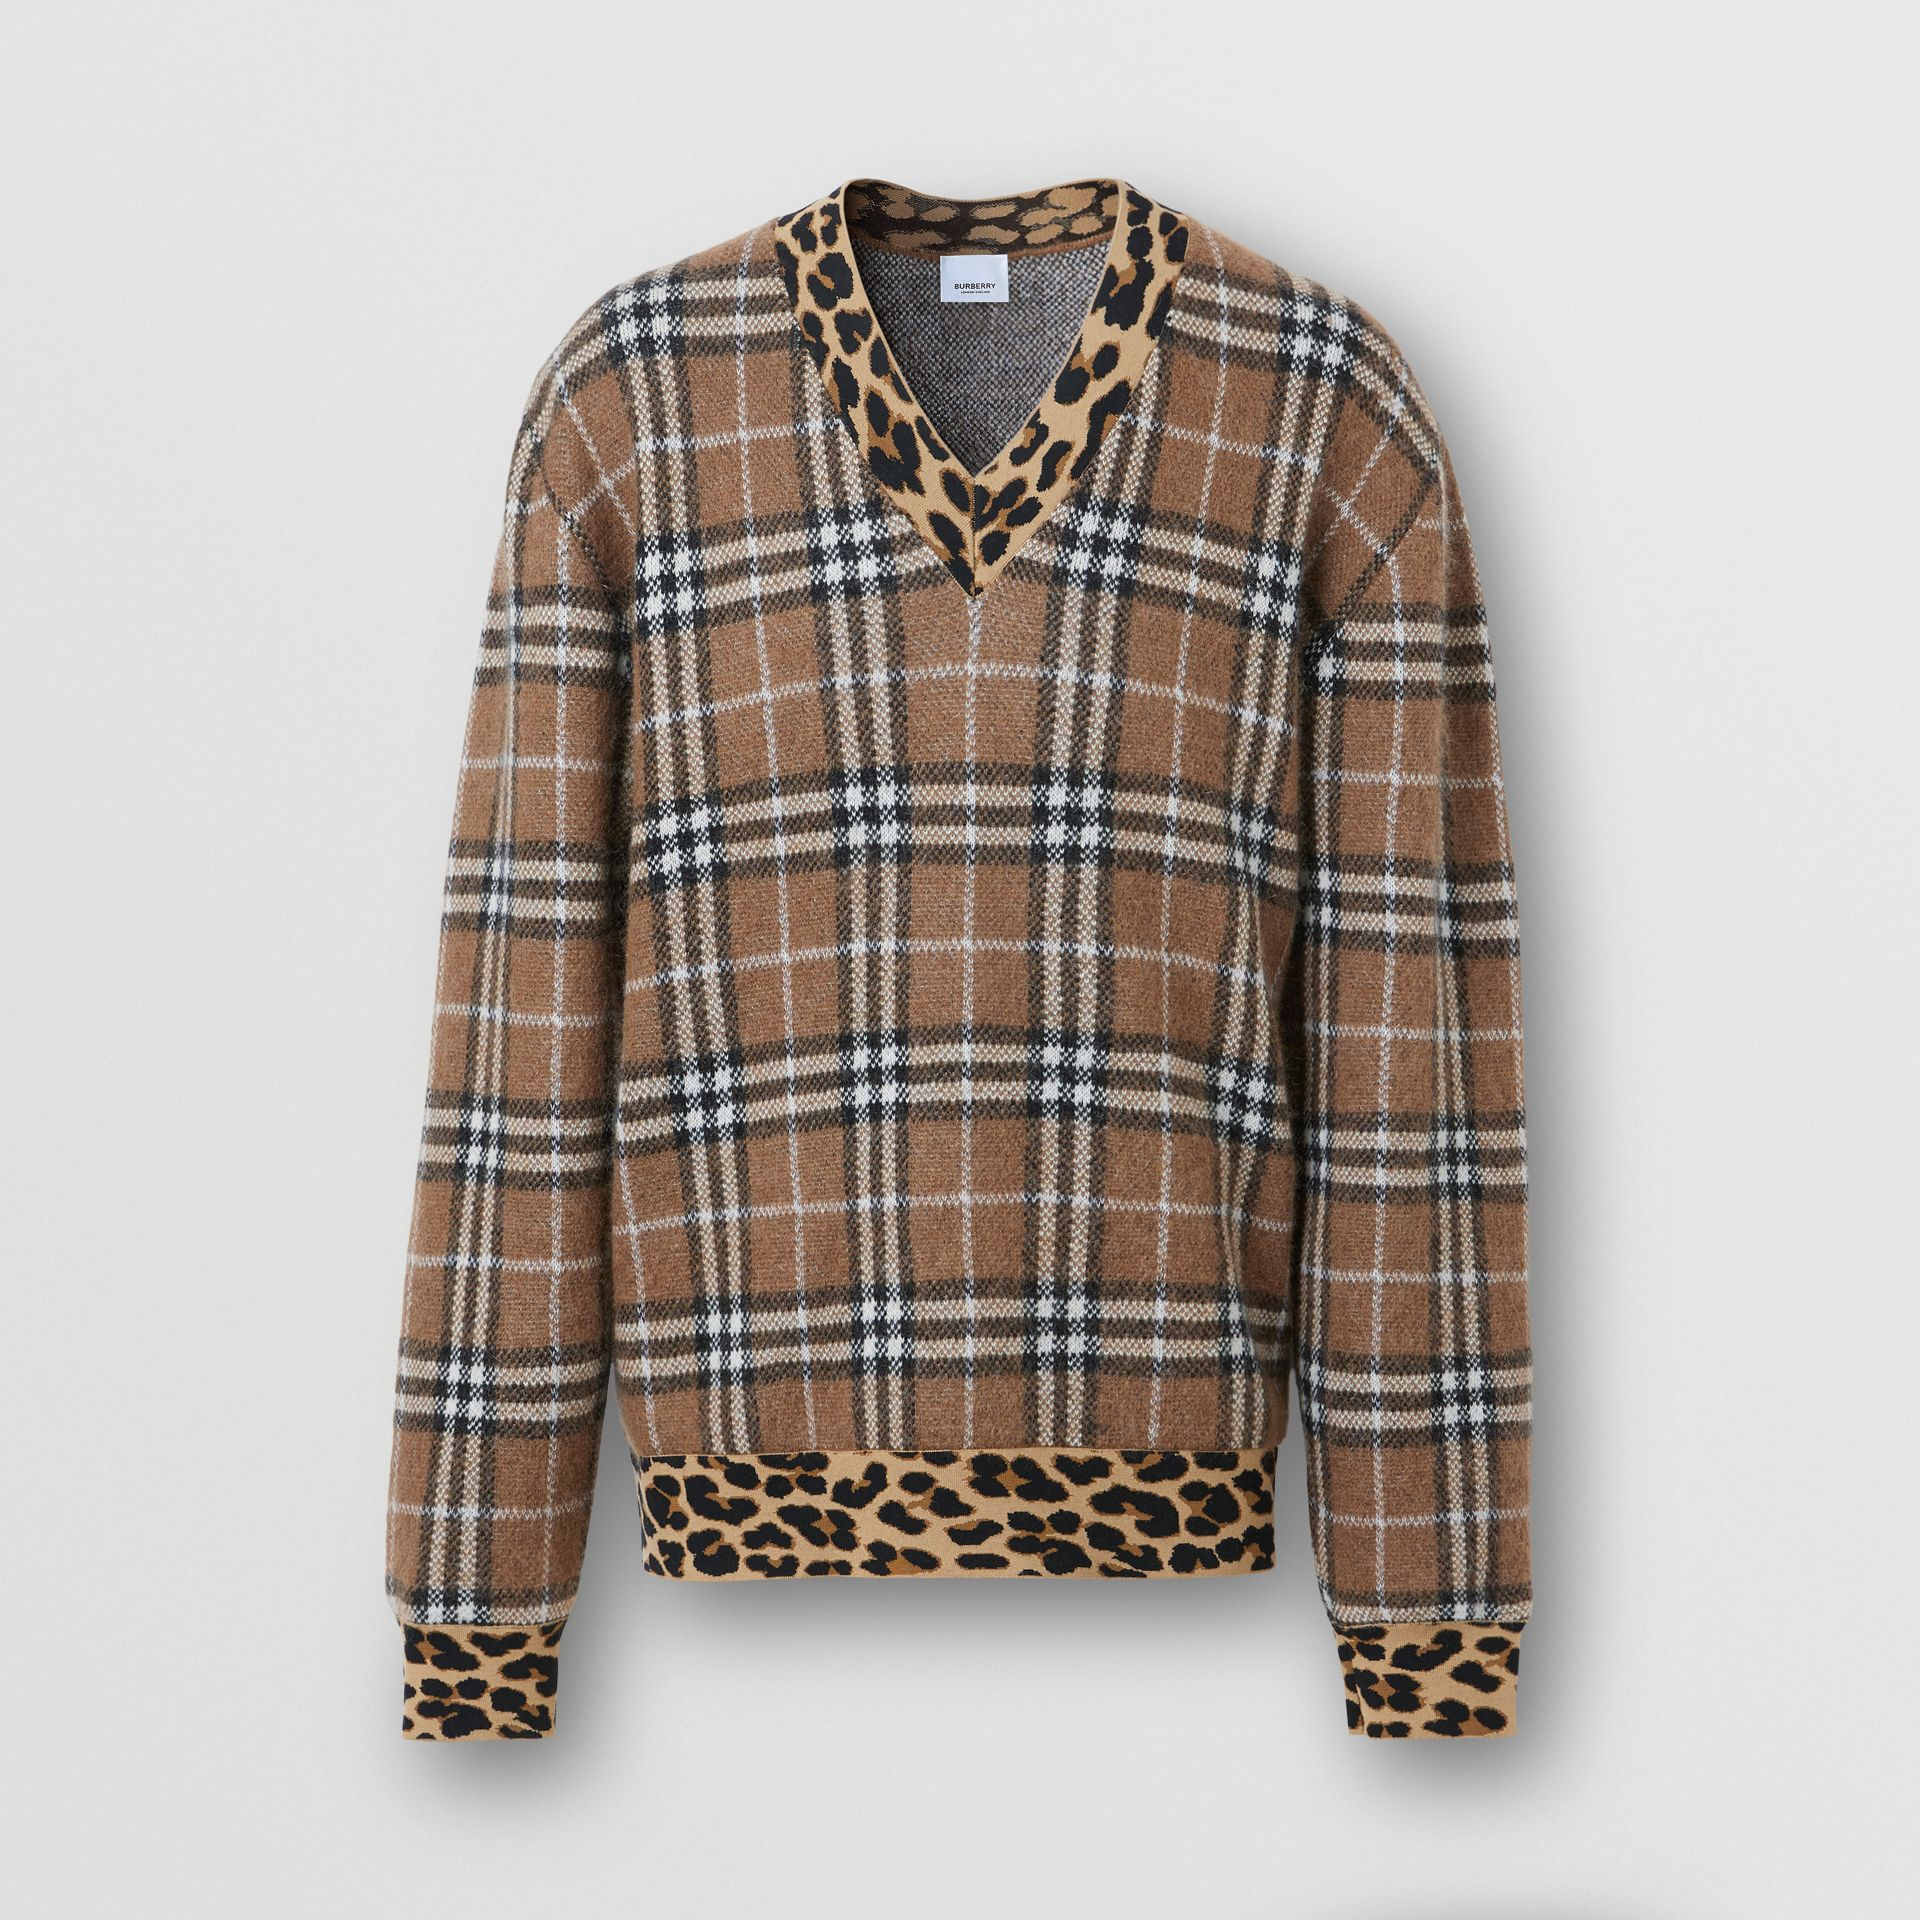 Leopard Detail Vintage Check Cashmere Blend Sweater in Warm Walnut - Men | Burberry - gallery image 3